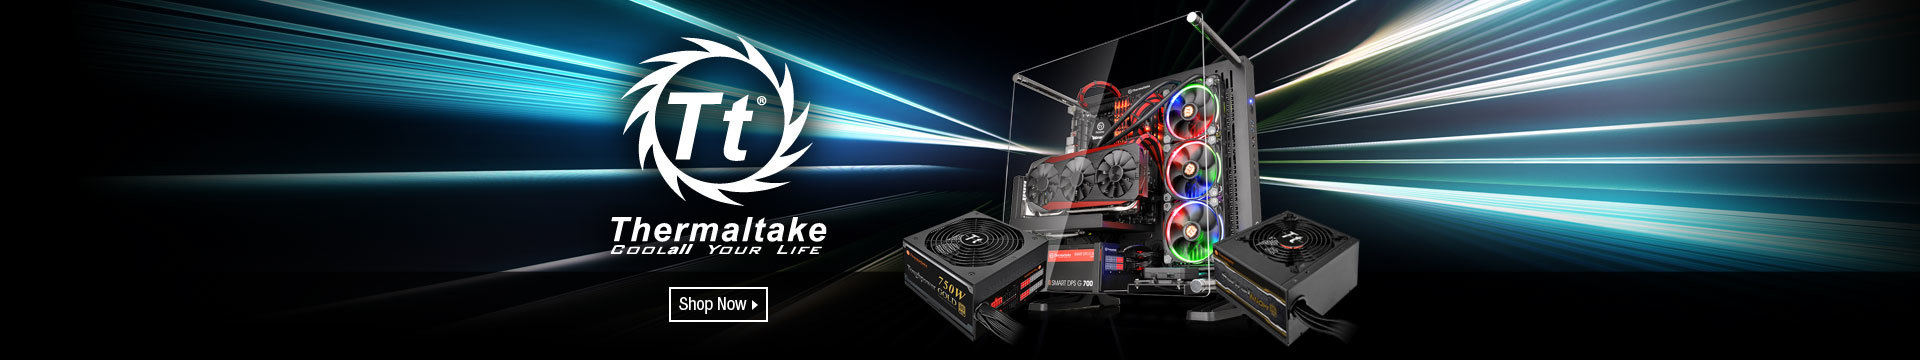 Thermaltake Cool all Your Life